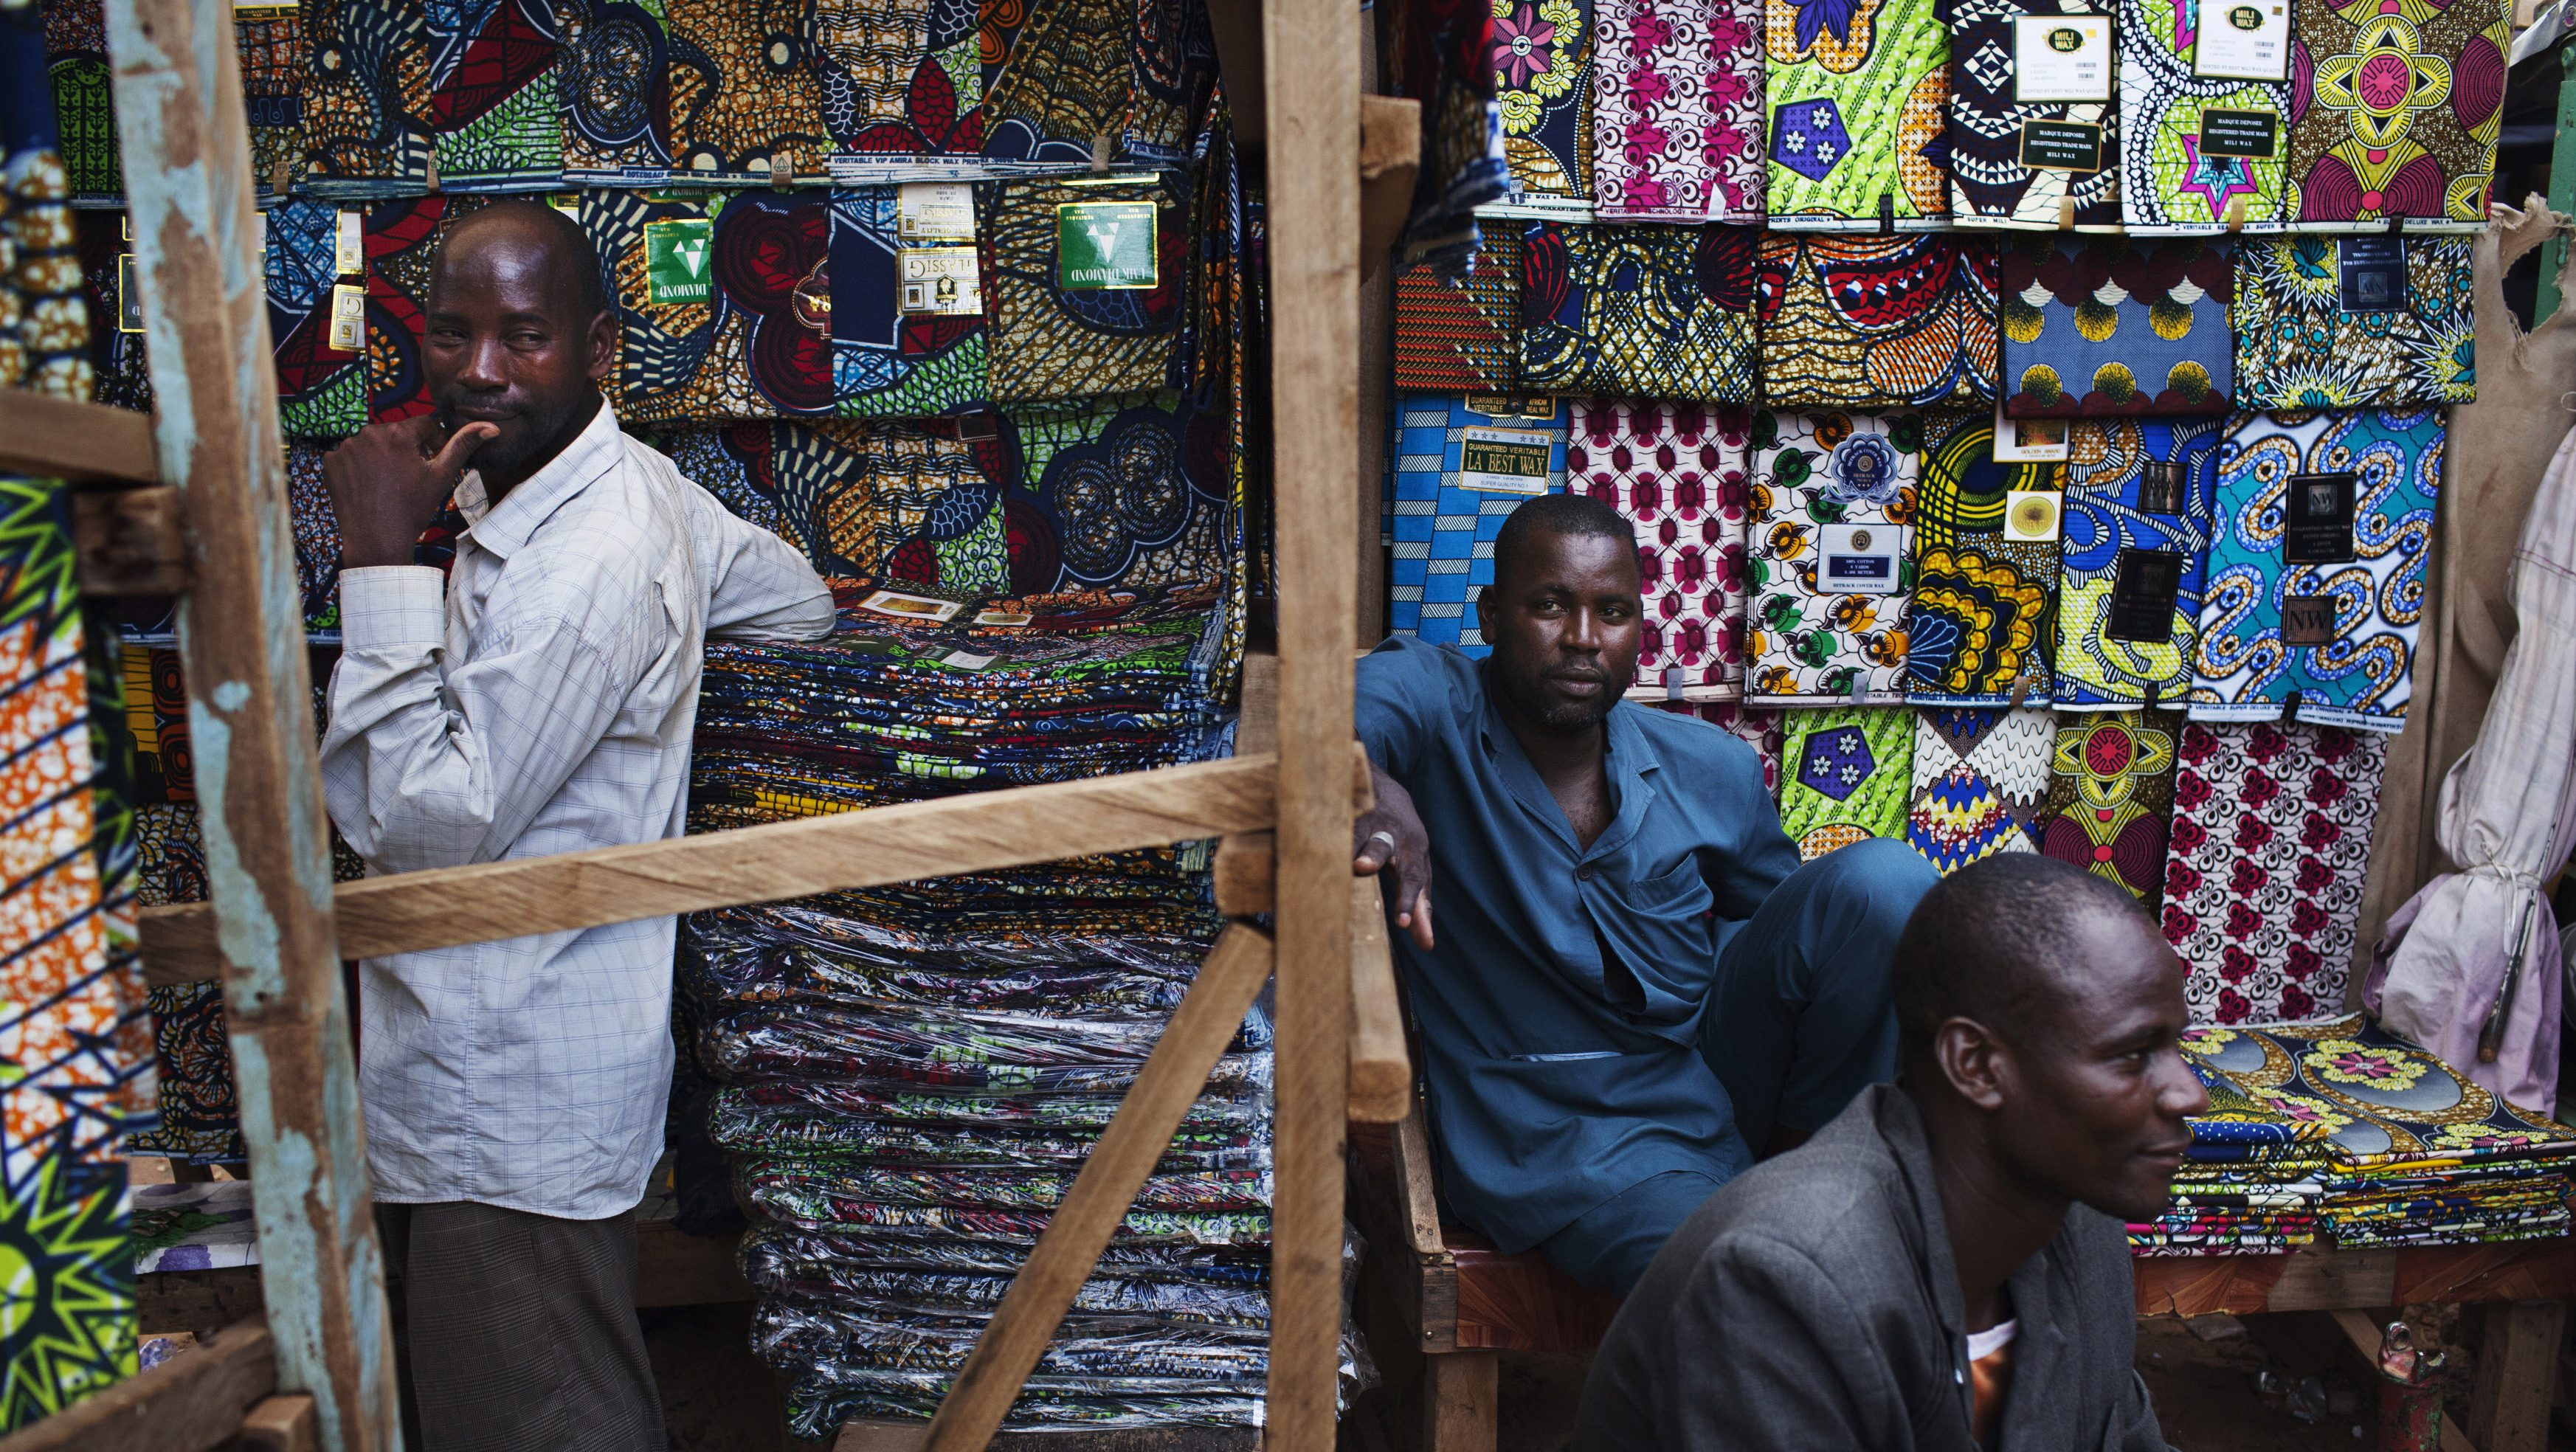 Cloth vendors sit in front of wax cloth for sale at the Grand Market in Niamey, September 17, 2013. Picture taken September 17, 2013.  To match Special Report NIGER-AREVA/              REUTERS/Joe Penney (NIGER - Tags: BUSINESS EMPLOYMENT SOCIETY TEXTILE) - RTX1895V